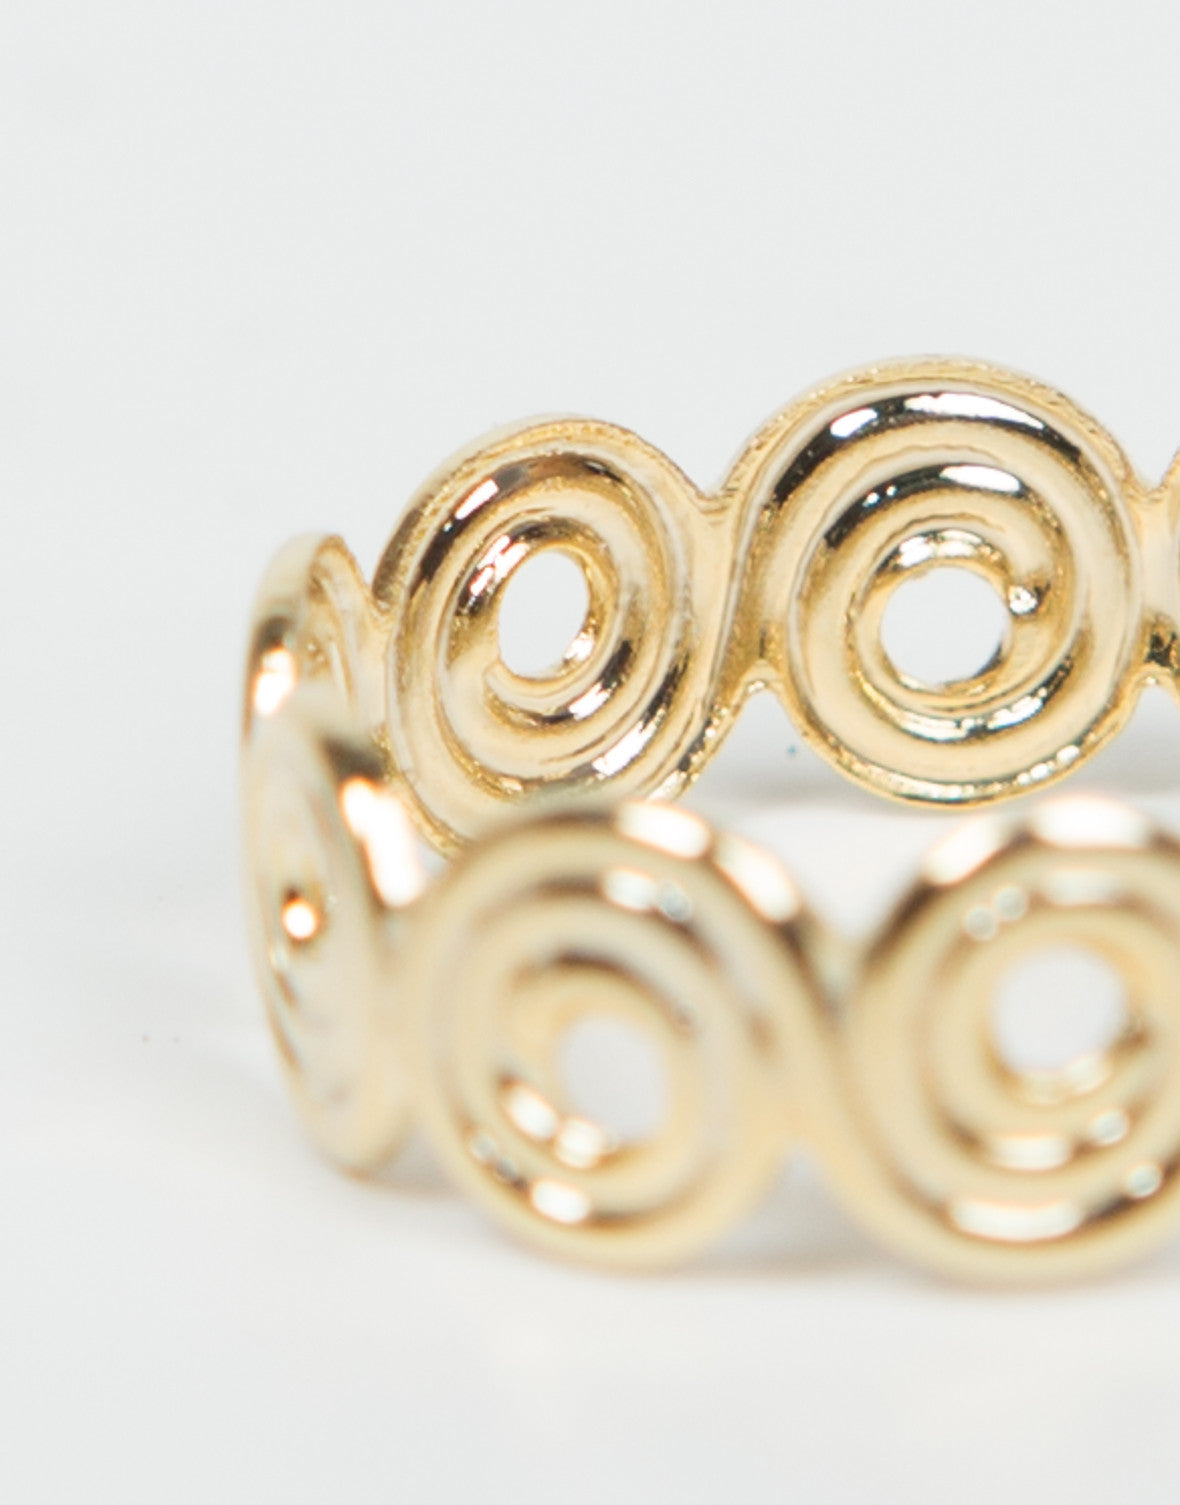 Detail of Swirly Knuckle Ring